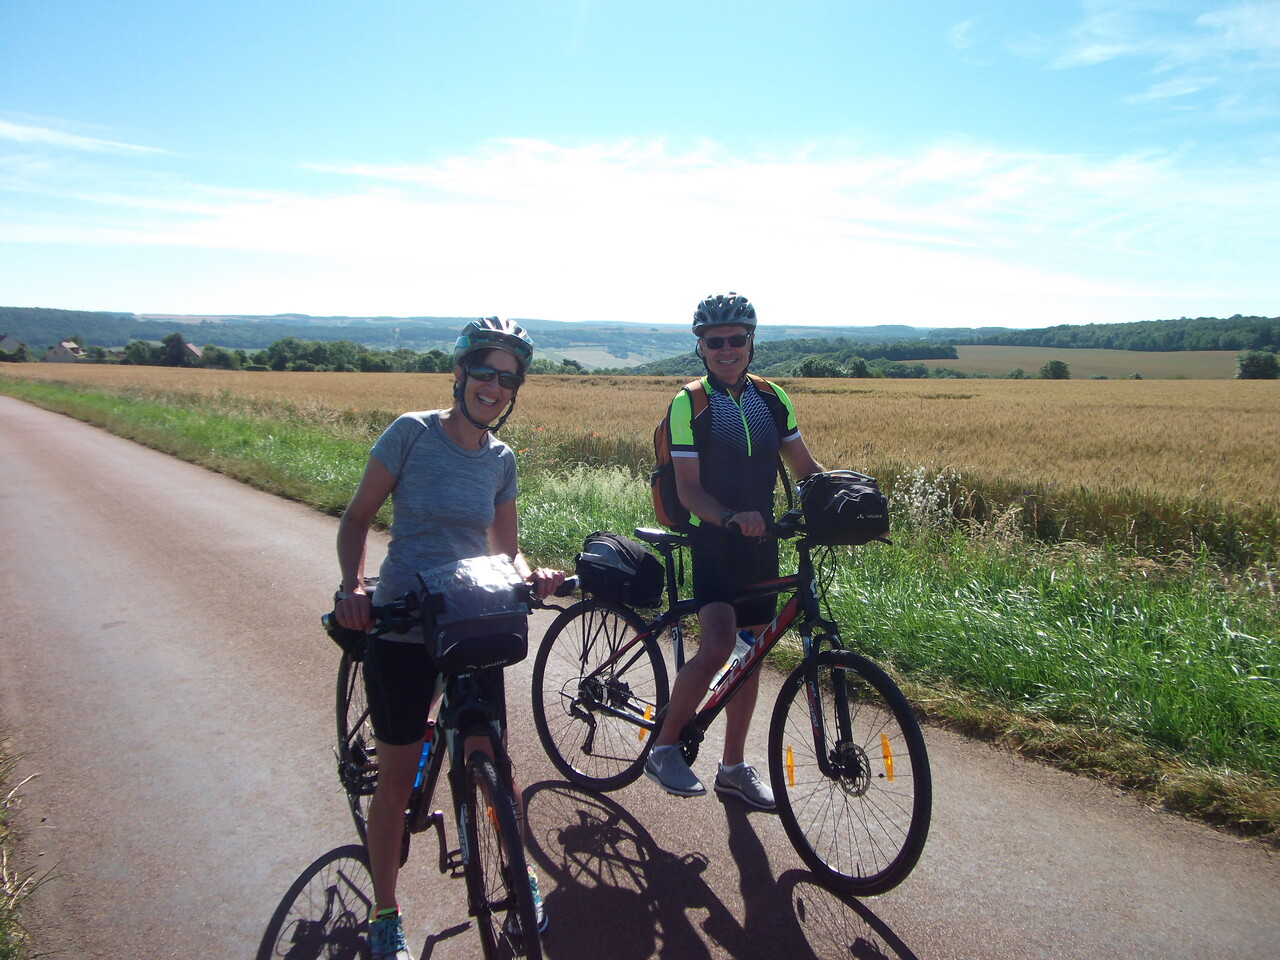 France: Burgundy Canals Bike